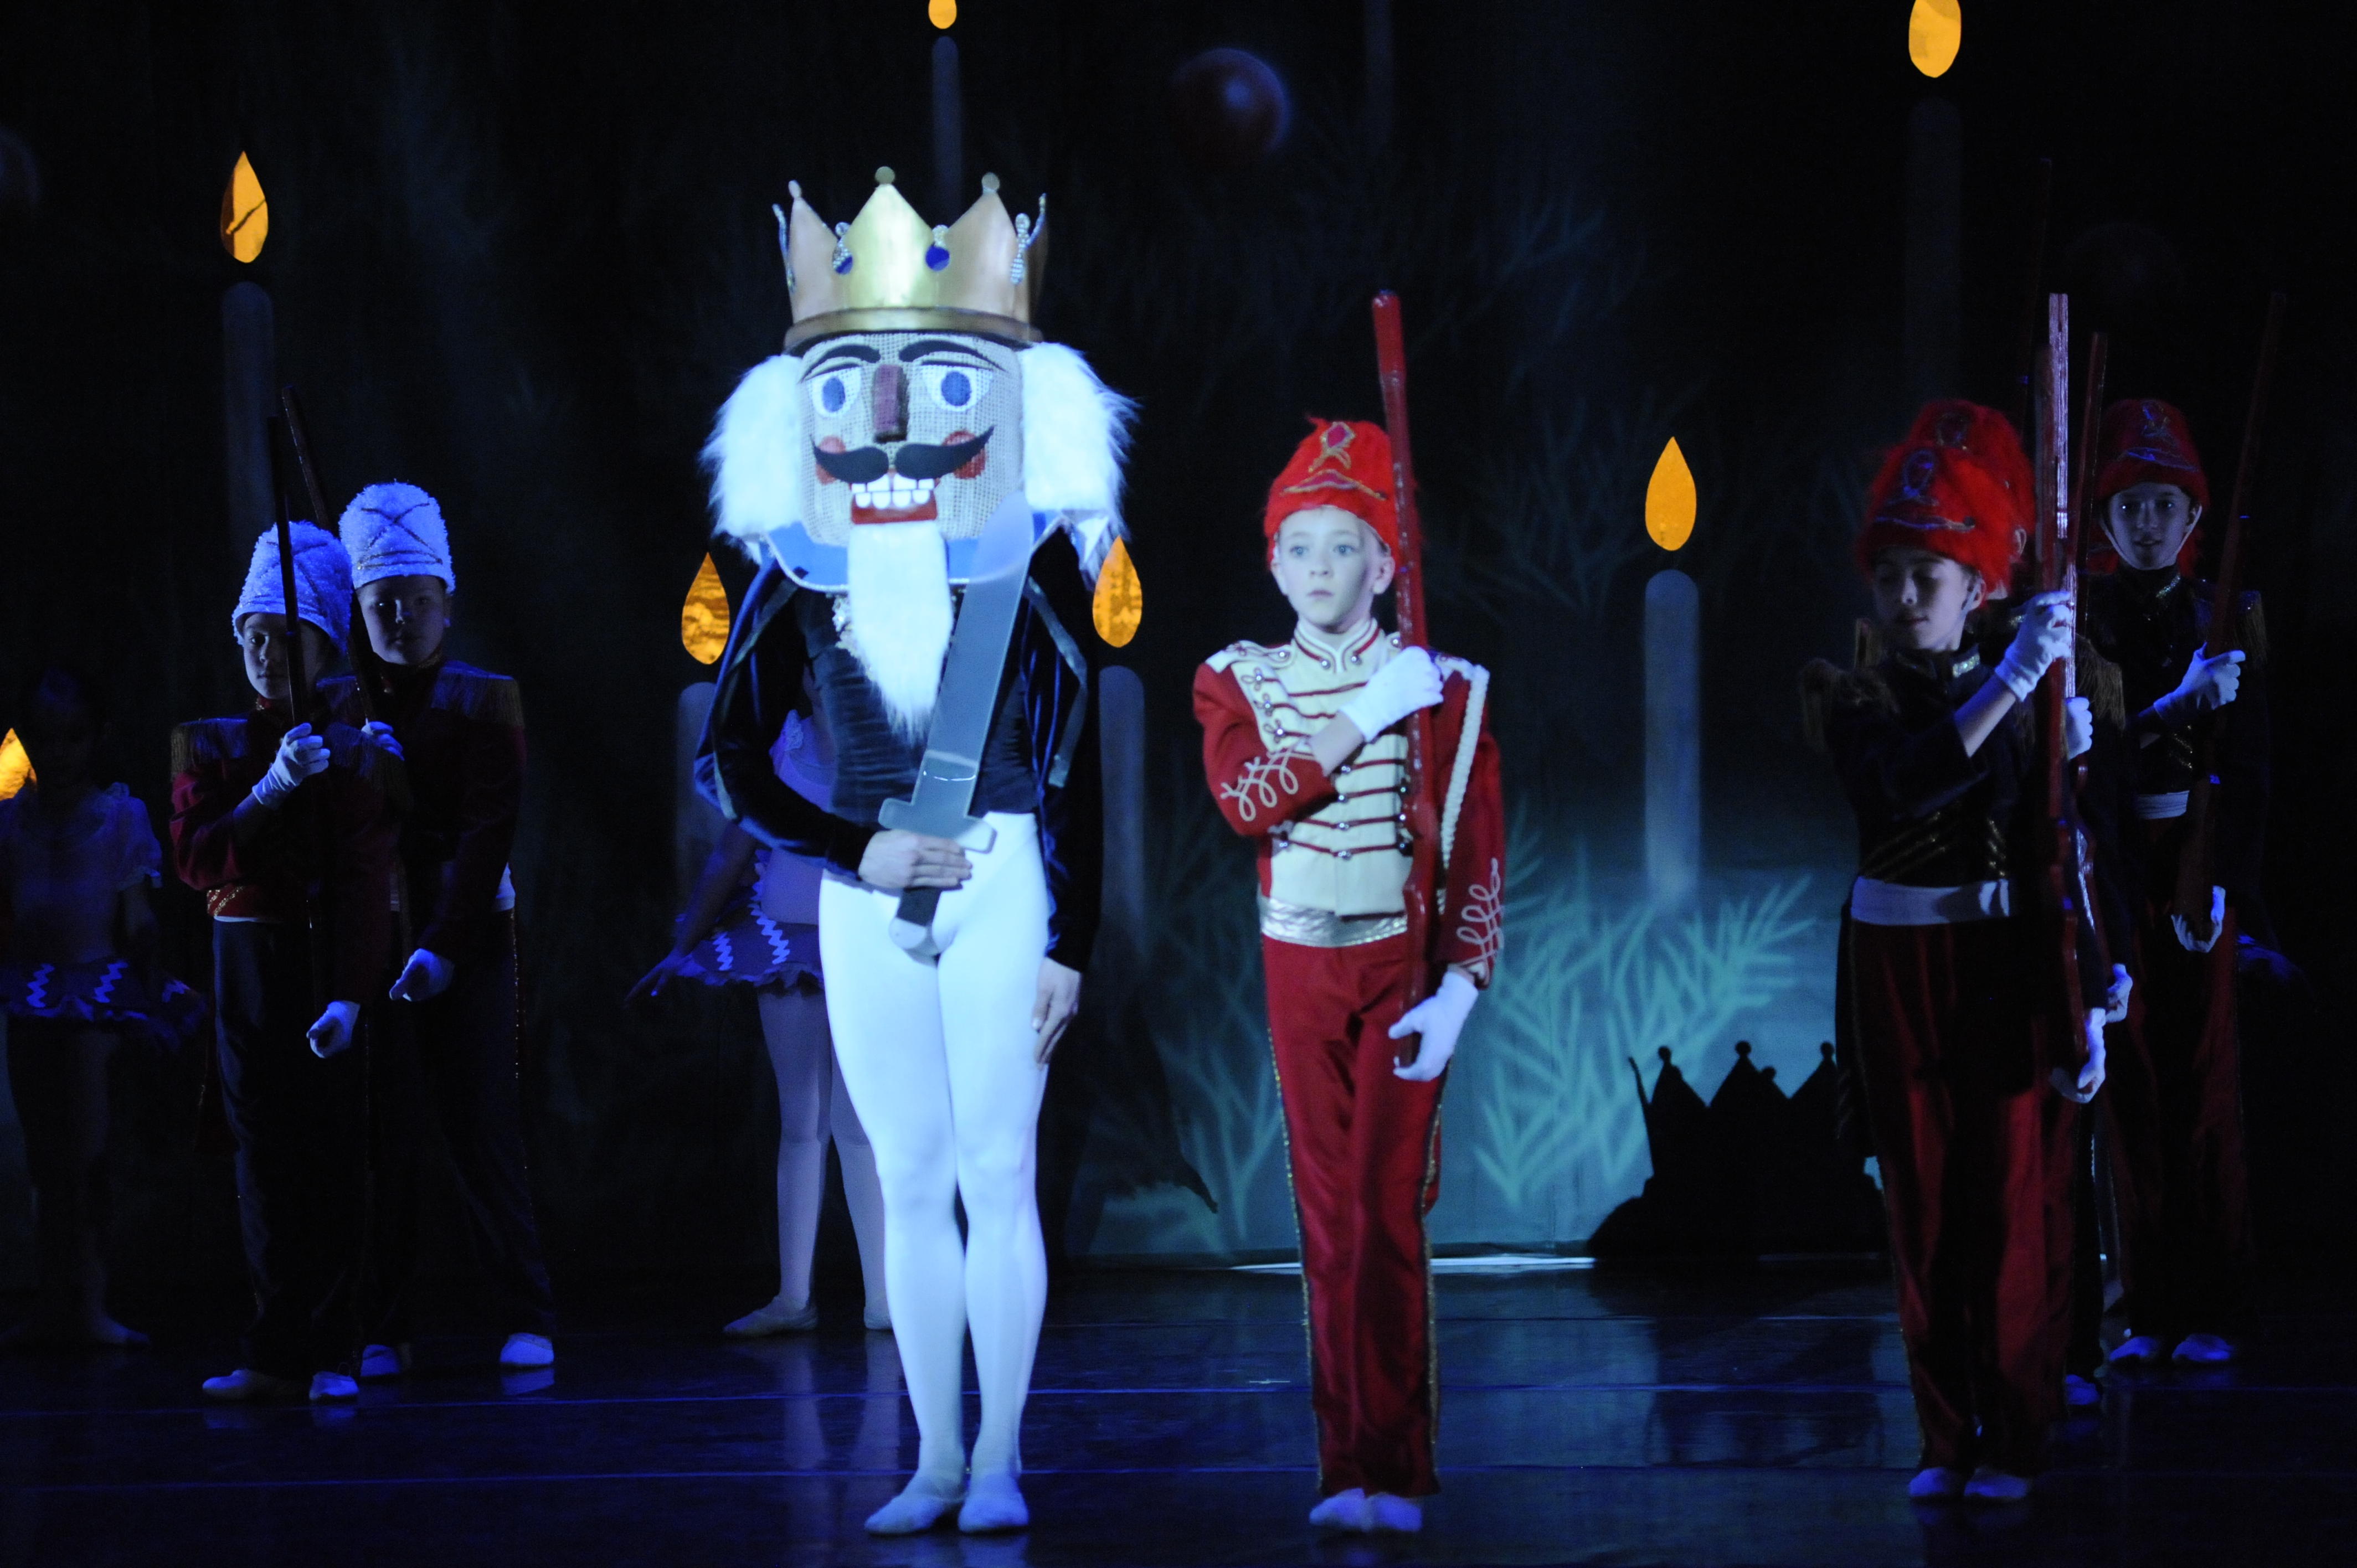 Utah Regional Ballet Brings The Nutcracker To The Covey Center For The Arts The Daily Universe